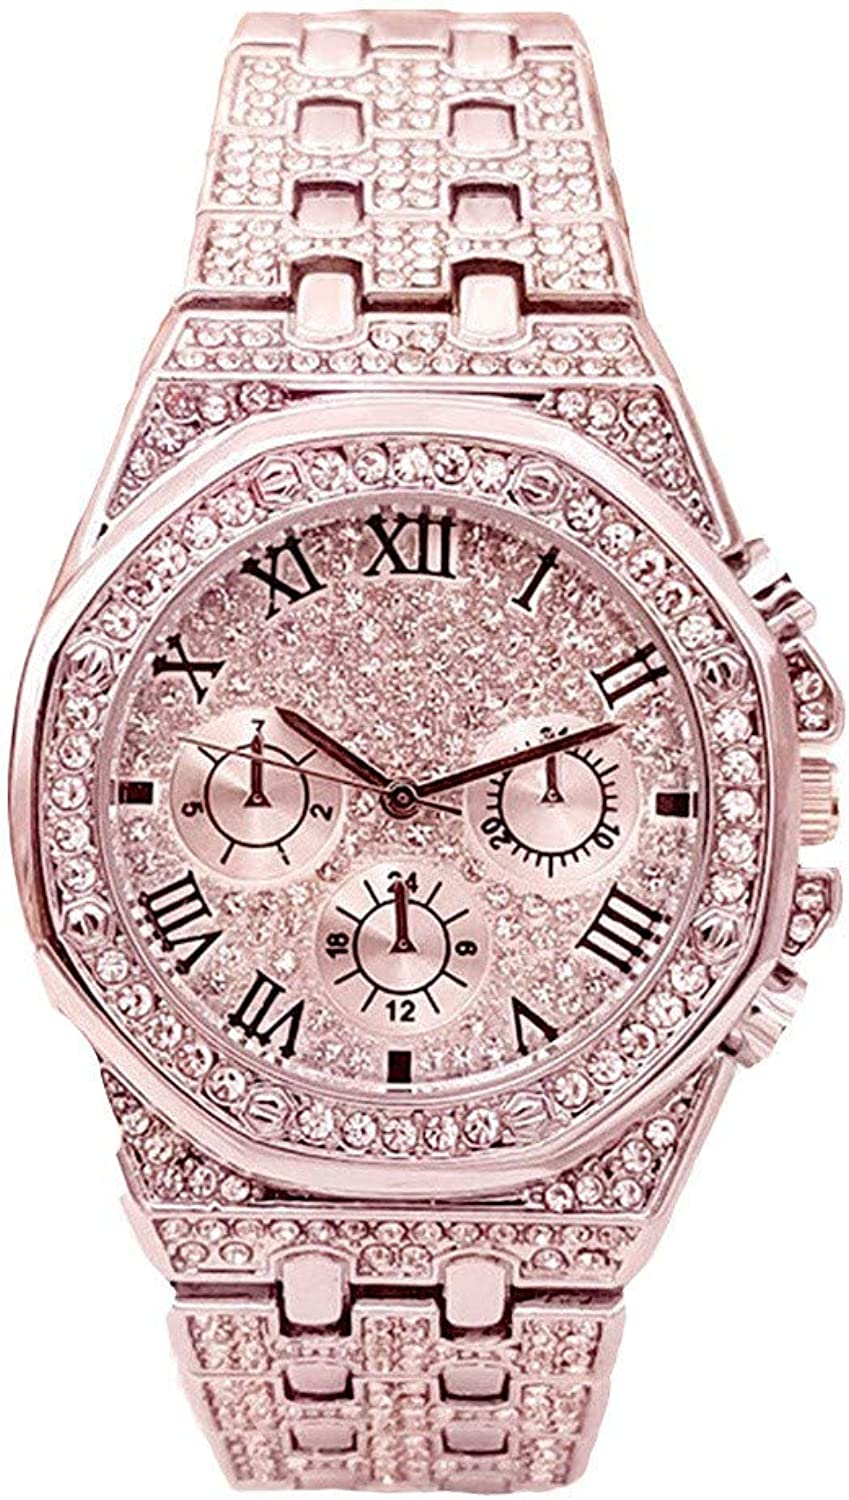 Bianca italia  diamond watch orologio cr silver biw-006